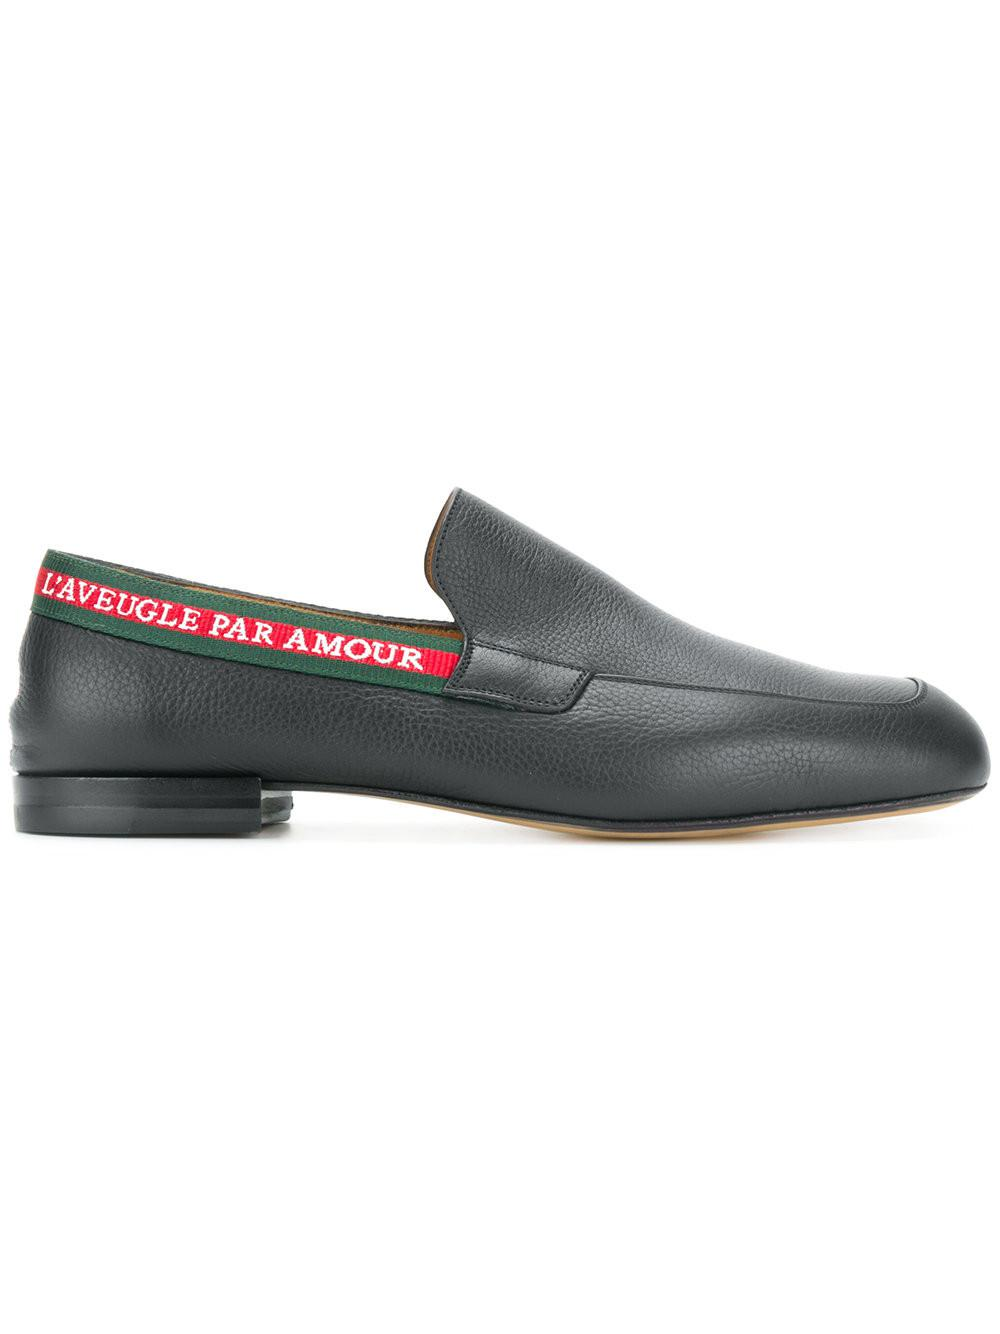 8b71f14c077 Lyst - Gucci L aveugle Par Amour Loafers for Men